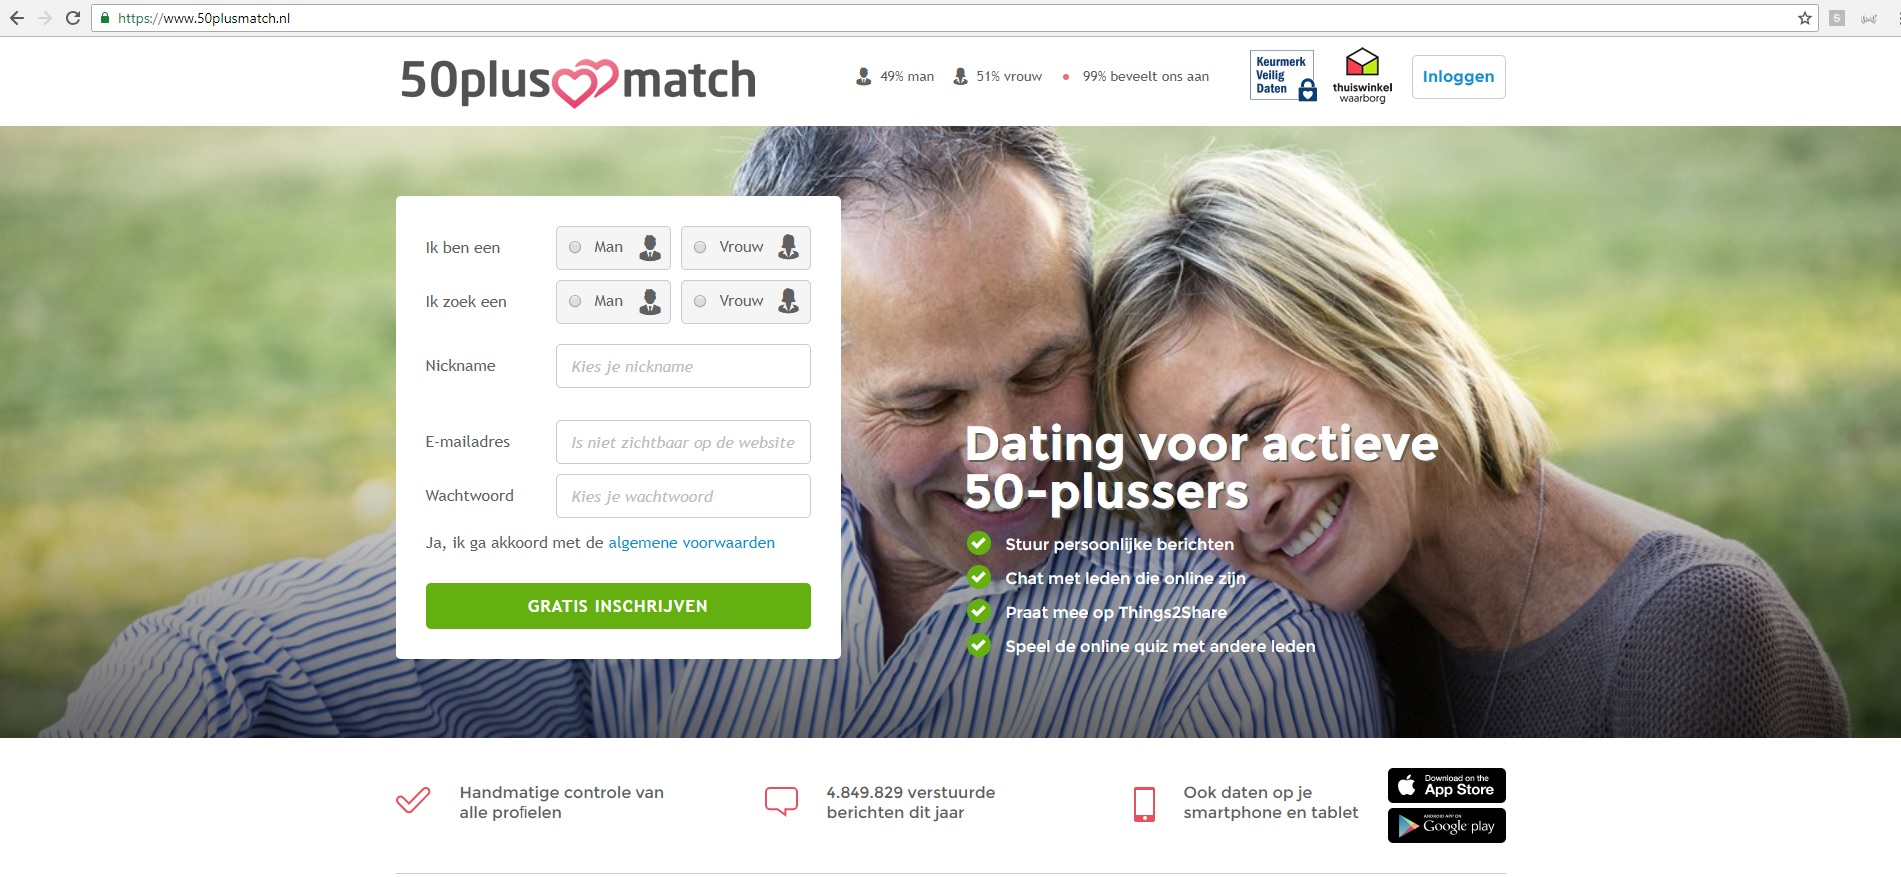 Datingsite boven 50